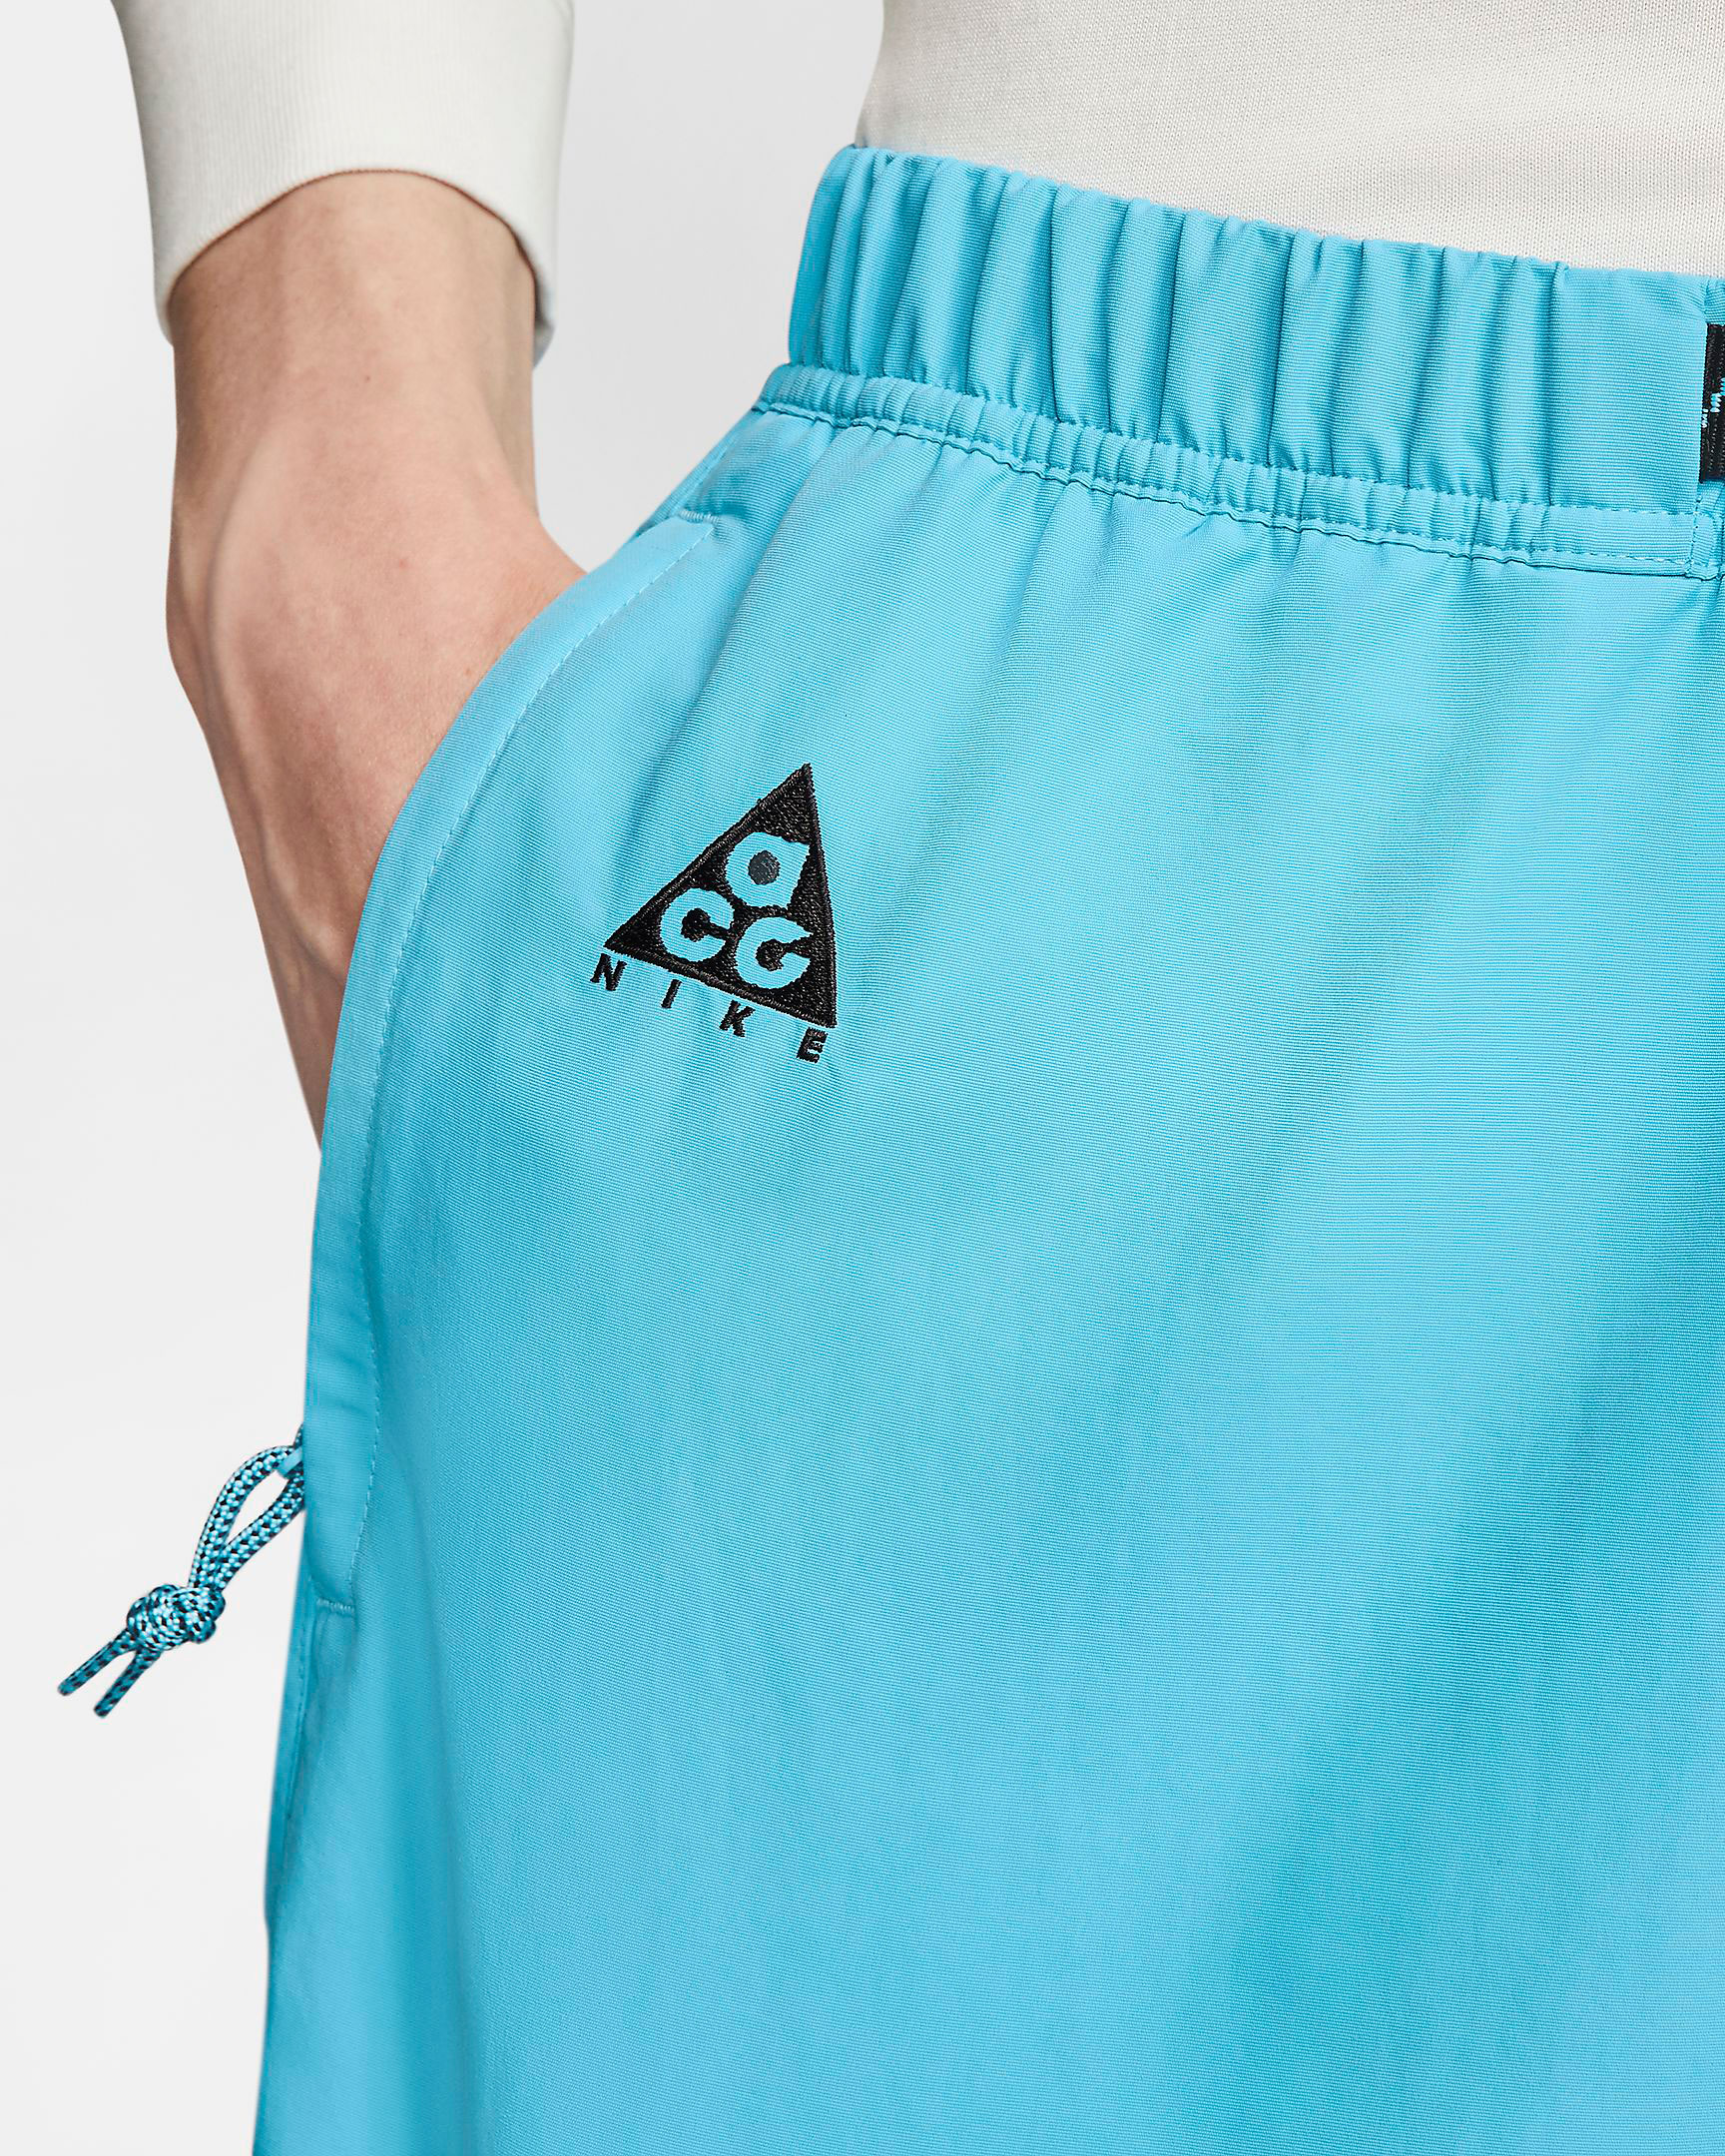 nike-acg-shorts-blue-1